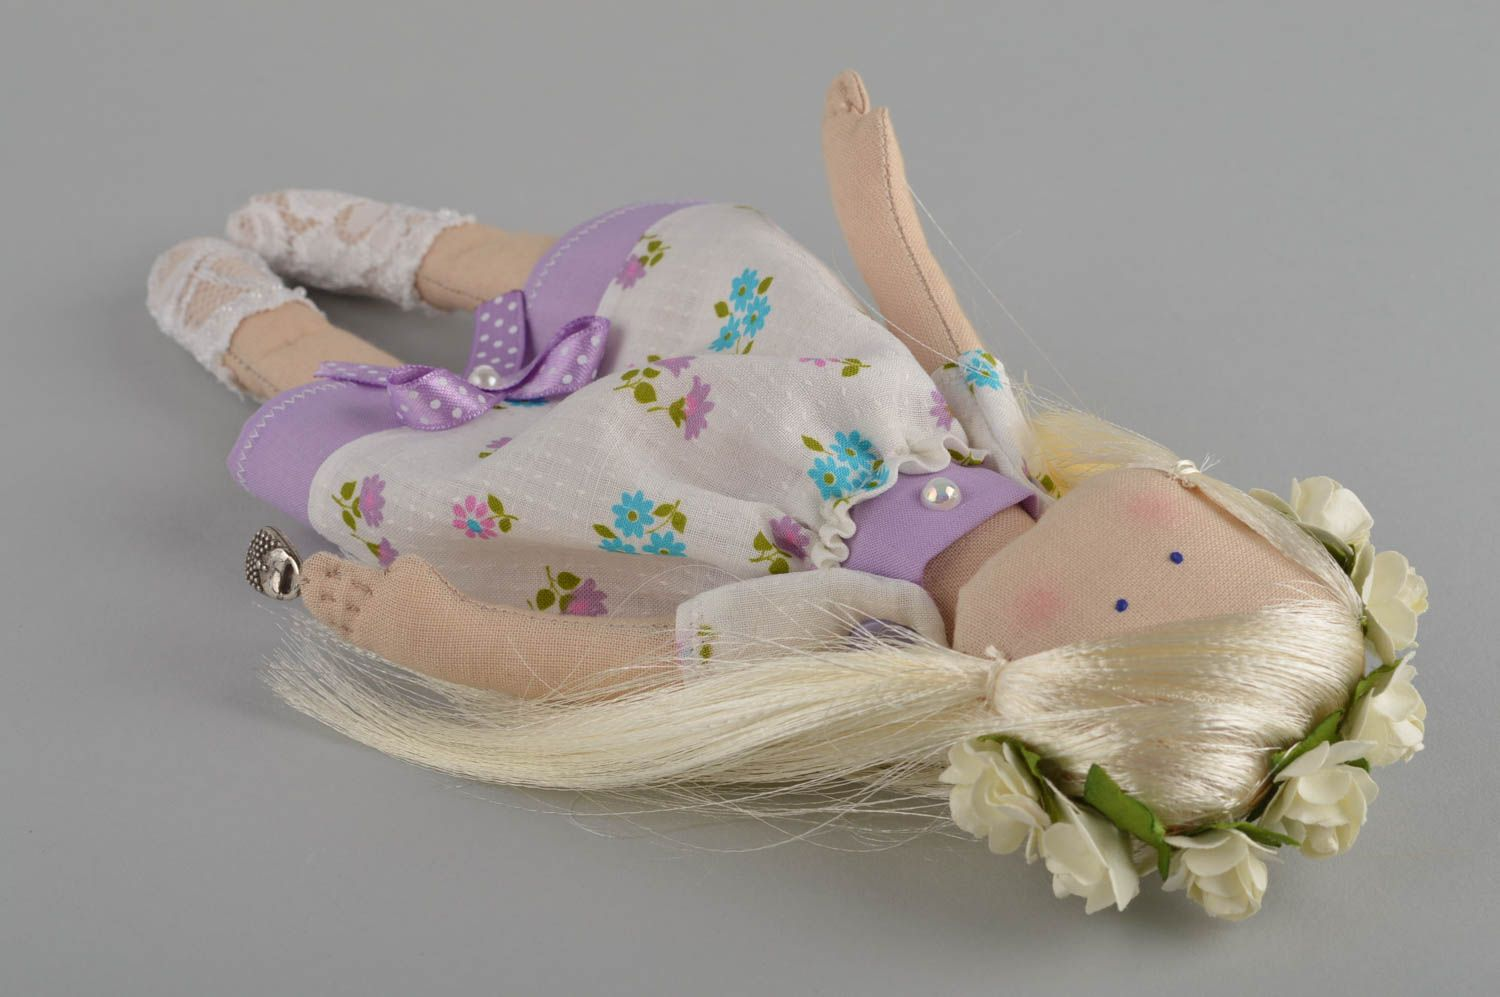 Soft doll handmade girl doll homemade decorations souvenir ideas gifts for her photo 3